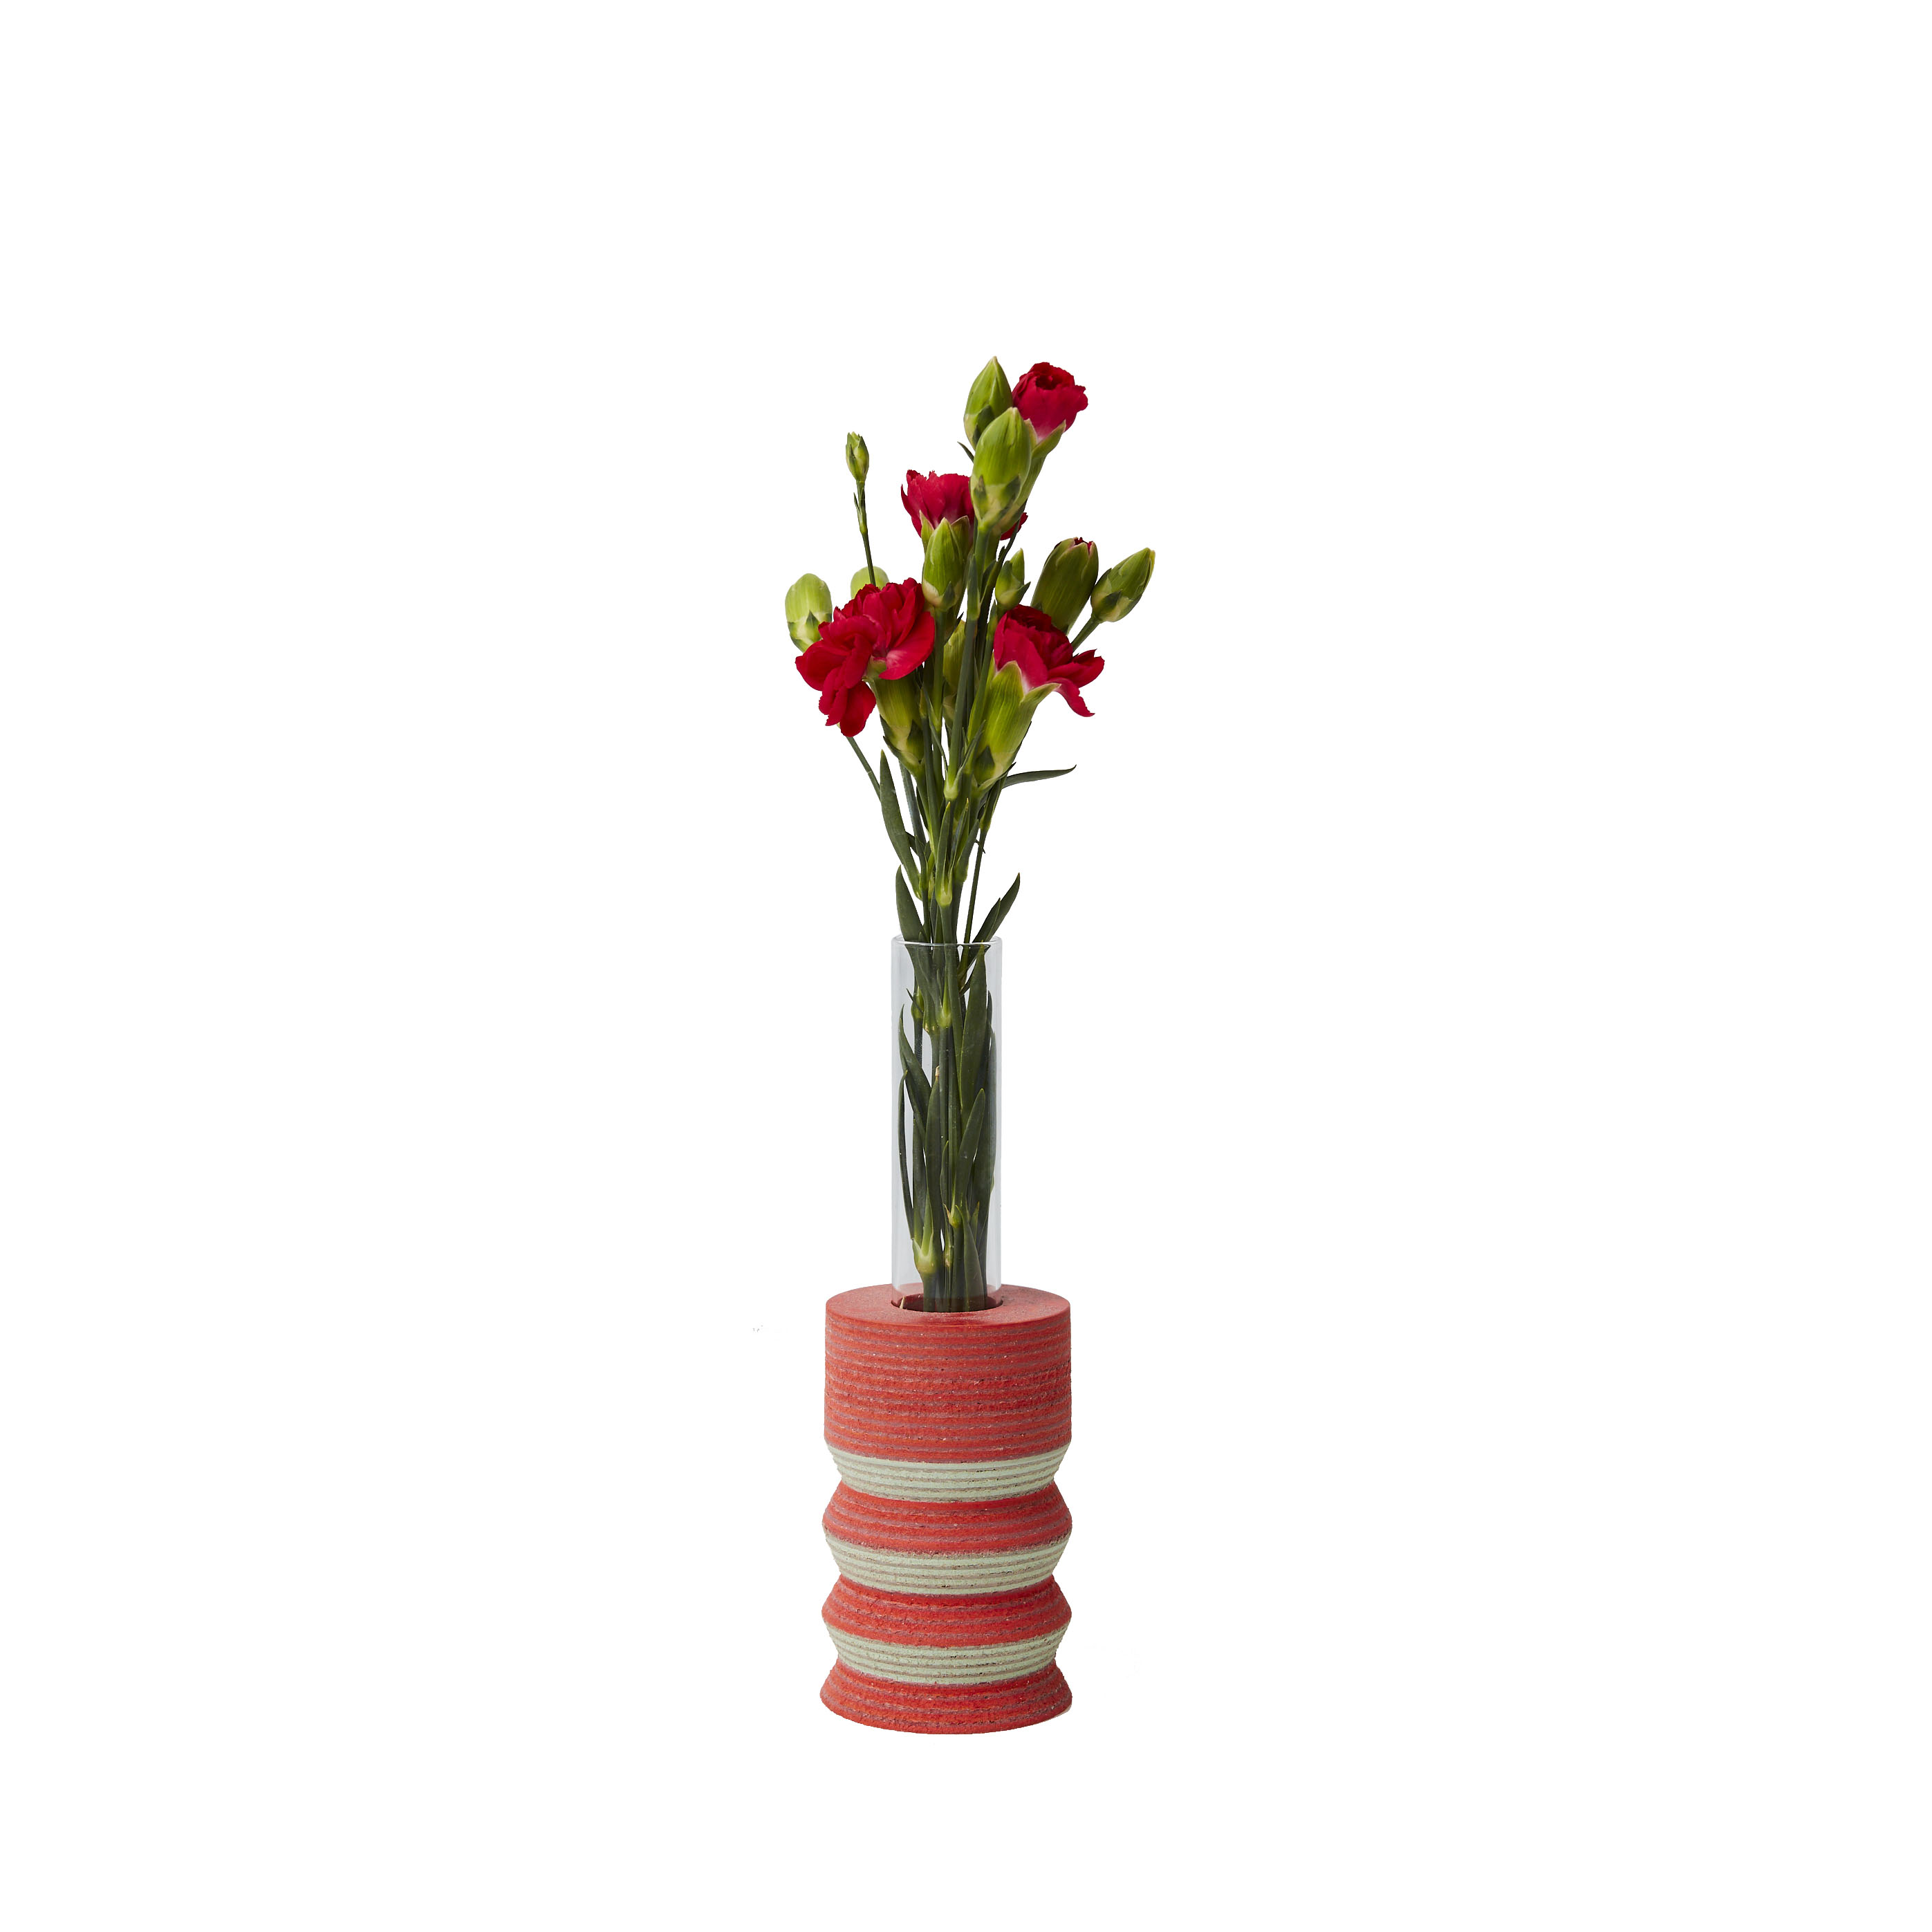 Lio Single Stem Vase 15 - <p>The LIO single stem vases have been turned by hand on a lathe from blocks of laminated Linoleum flooring. These lively yet muted vases are inset with glass tubes to hold single stems that elongate the playful forms. Particularly dynamic in small collections to energise and animate interiors. </p>  | Matter of Stuff